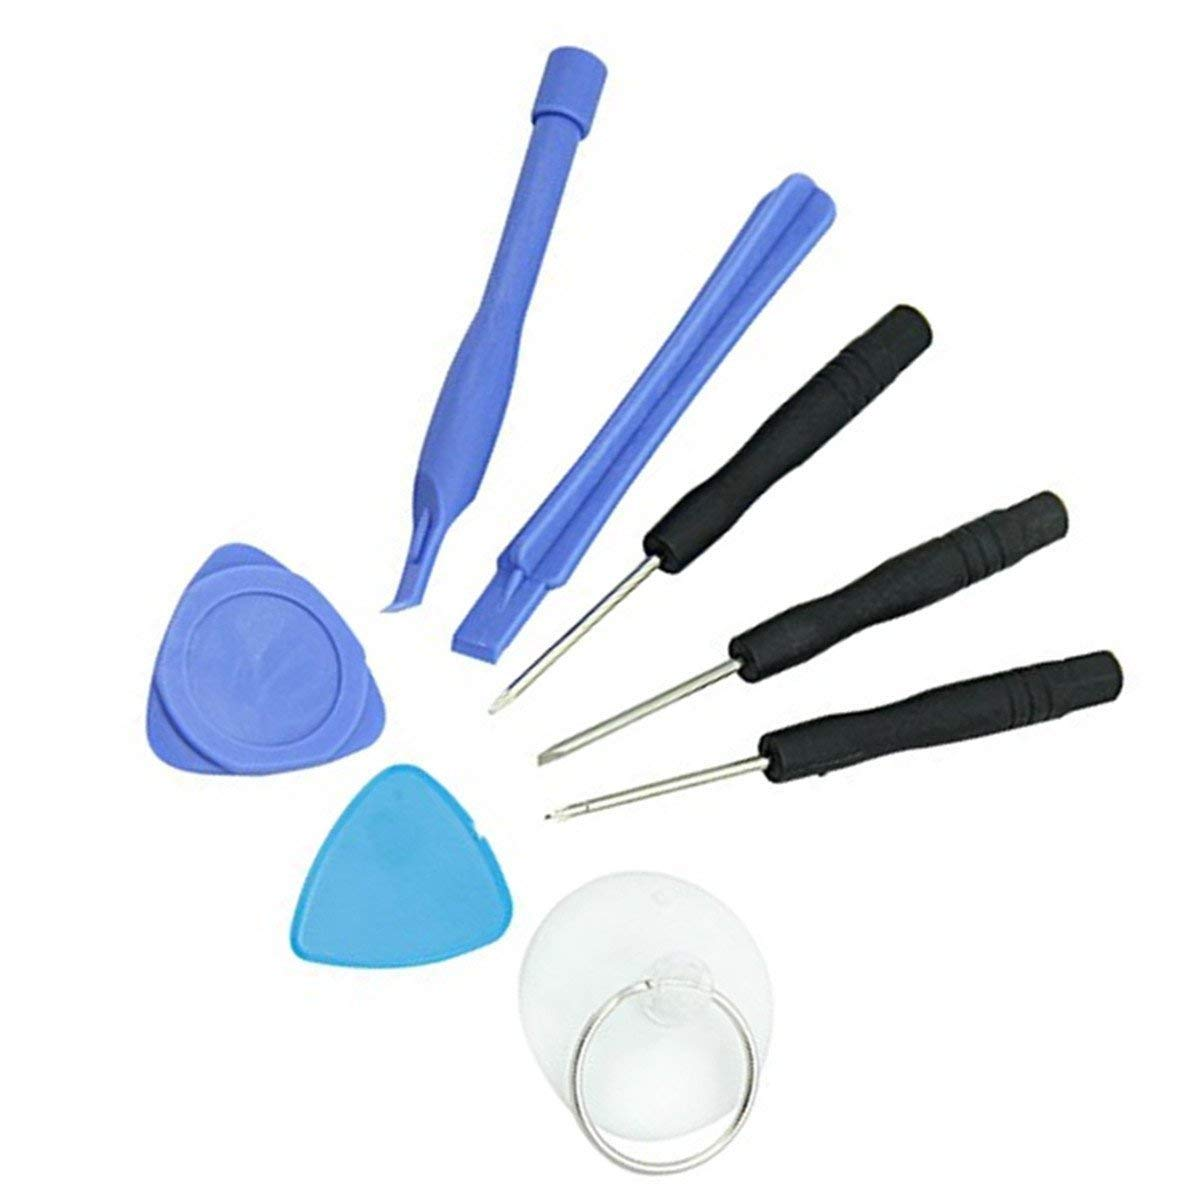 8 in 1 Mobile Phone Repair Tools Kit Smart Mobile Phone Screwdriver Opening Pry Set For iPhone Android iphone opening tools